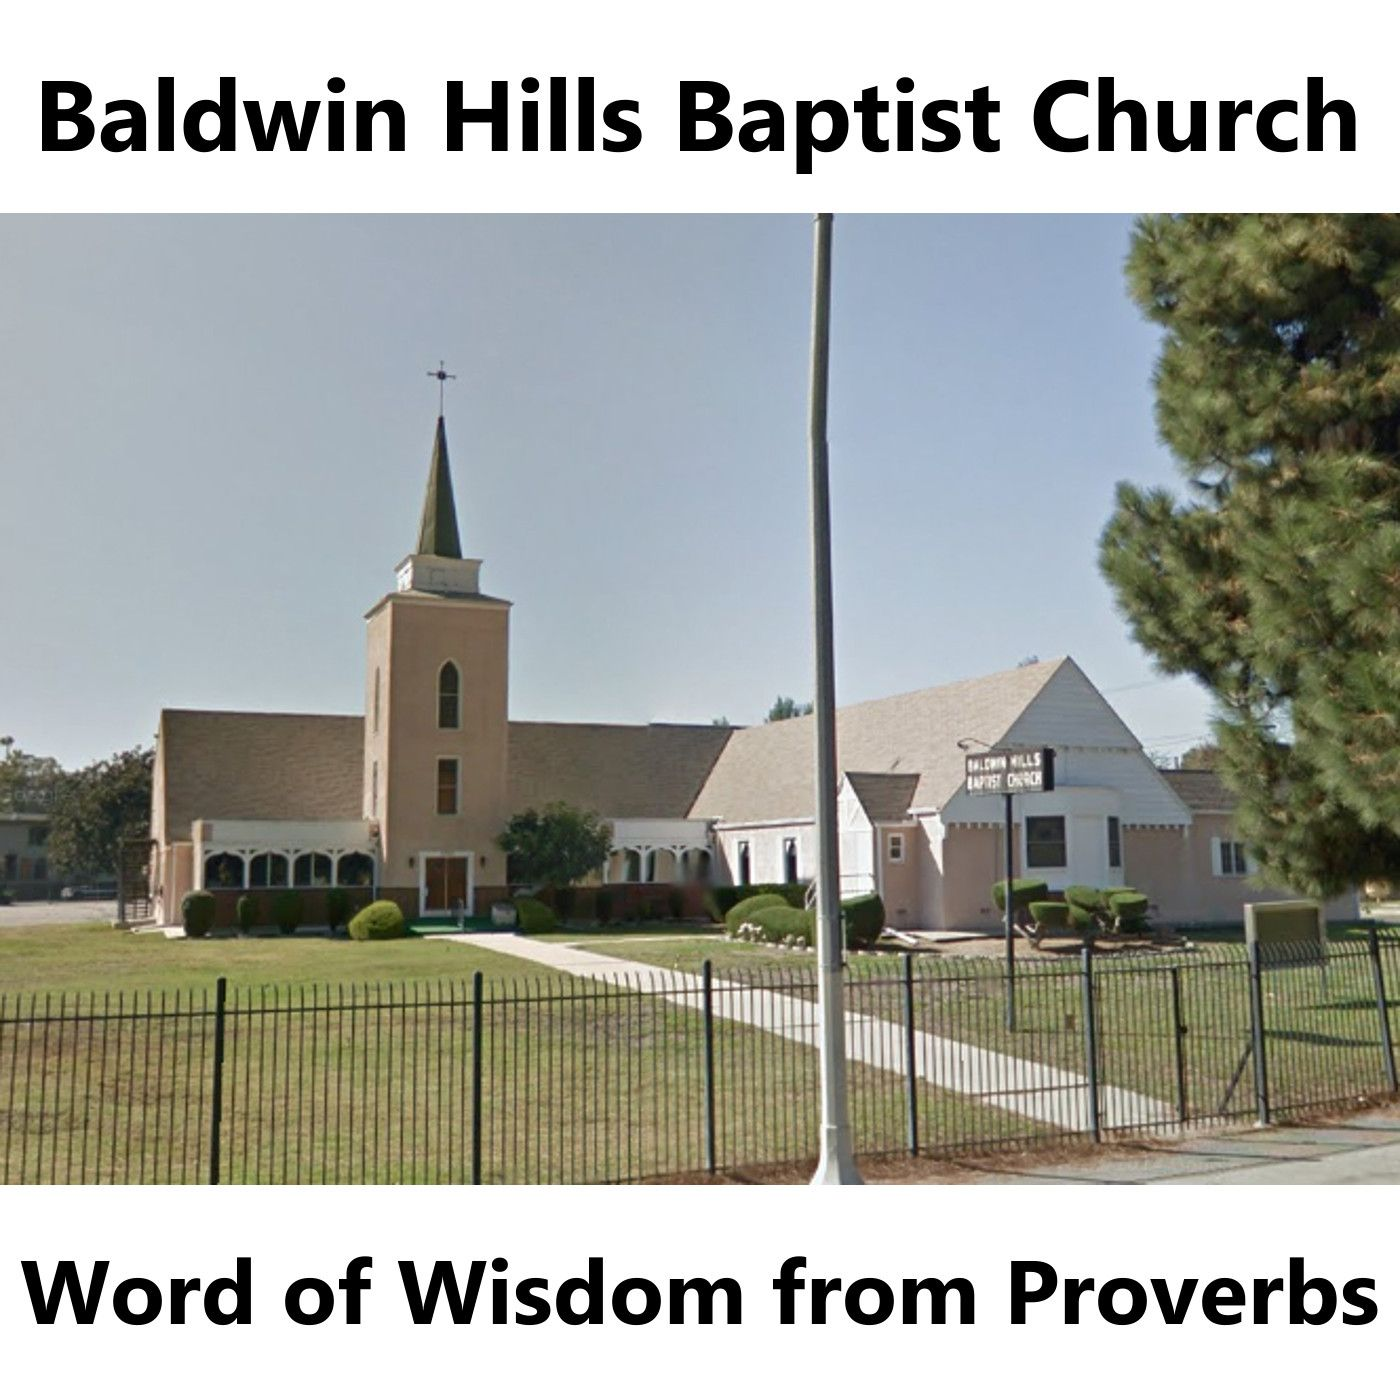 BHBC Word of Wisdom (from Proverbs)